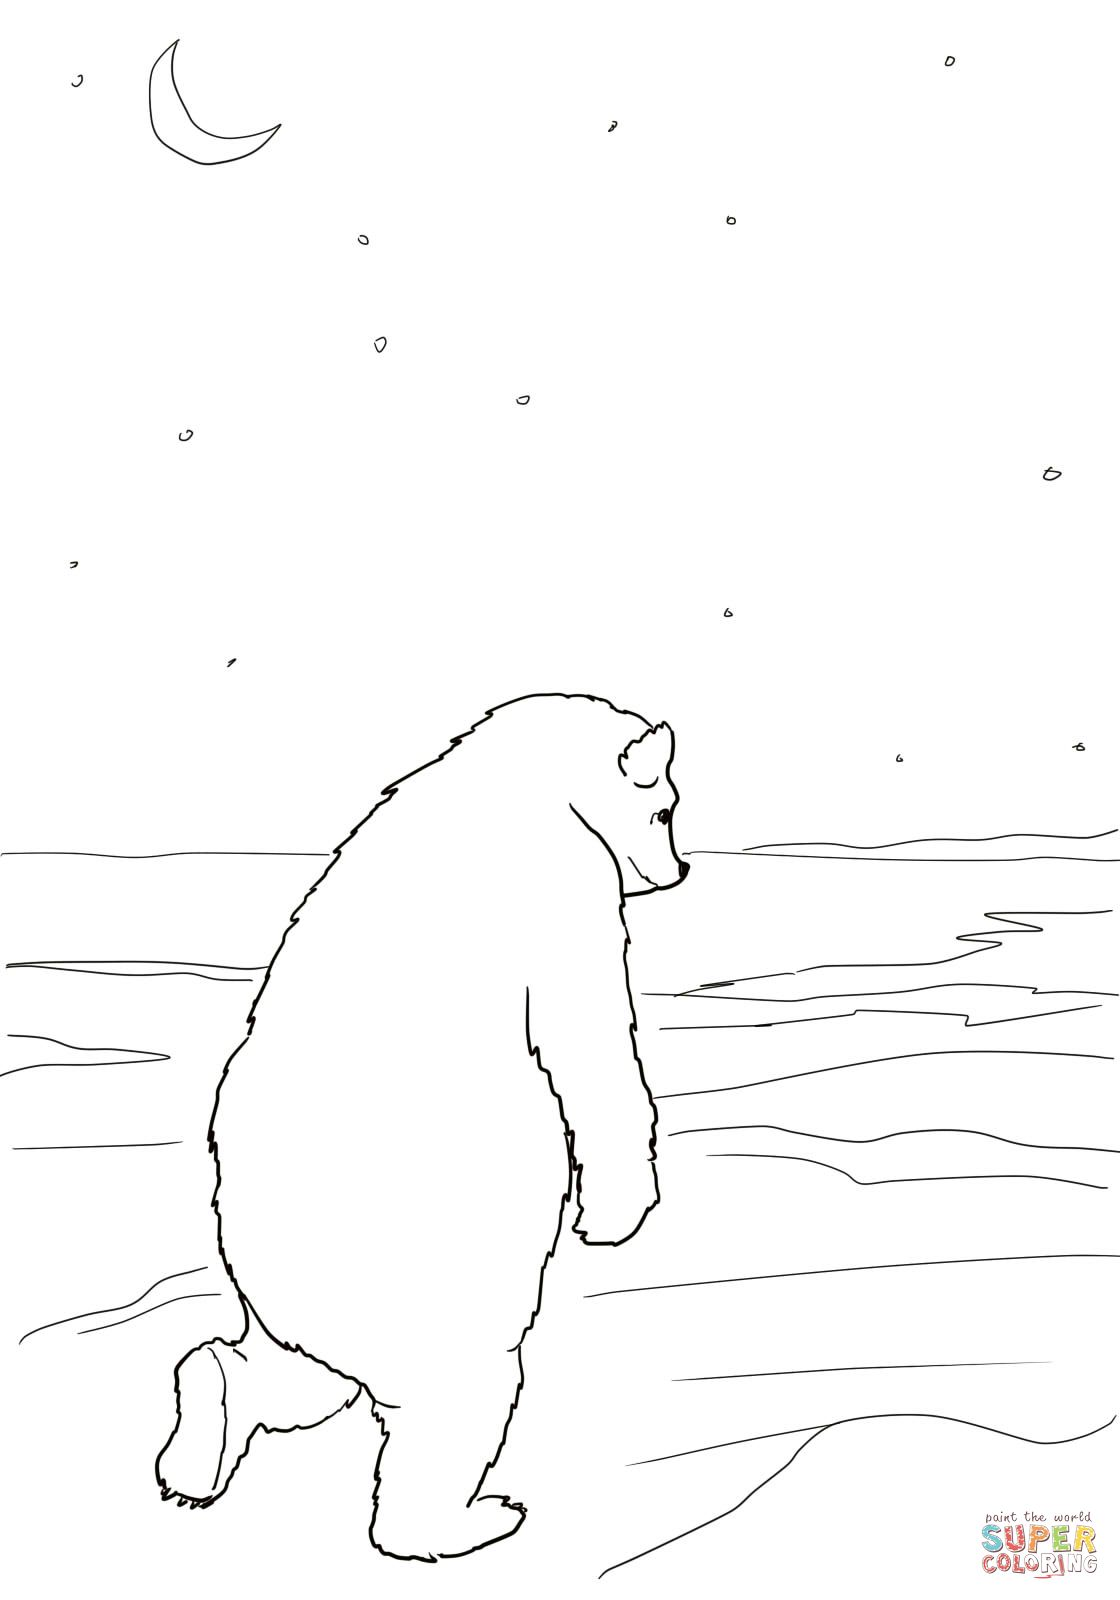 Bear Returns To His Cave Coloring Page Supercoloring Com Coloring Pages Free Printable Coloring Pages Free Printable Coloring